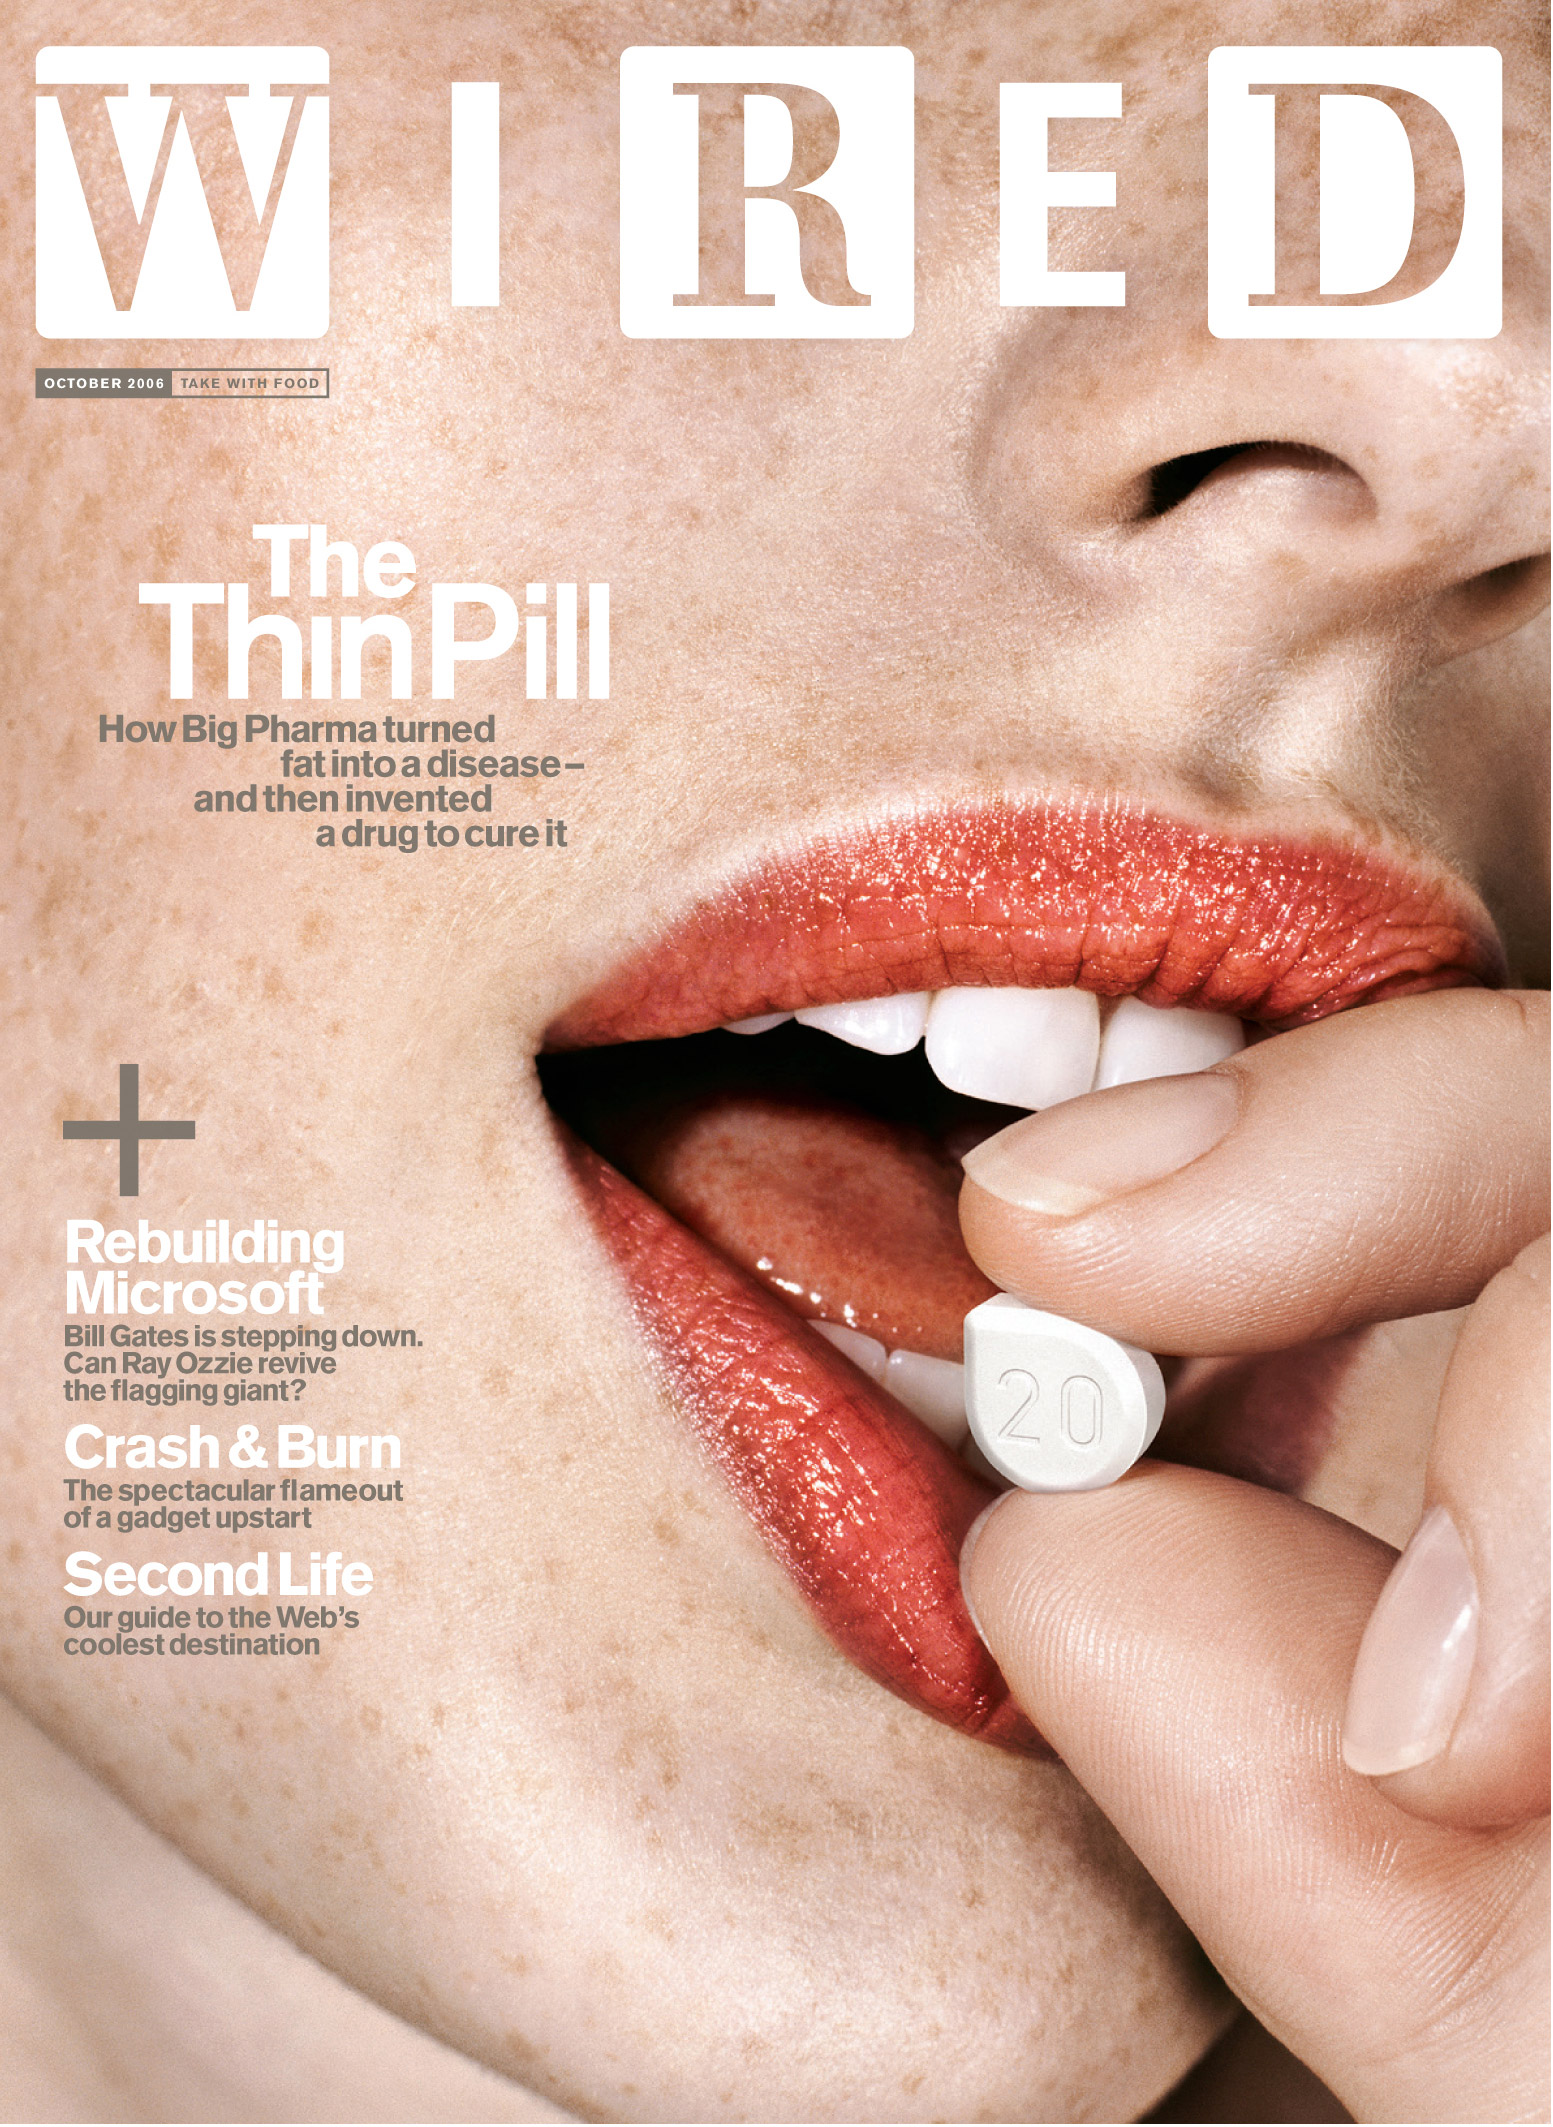 wired_cover_slimpill.jpg